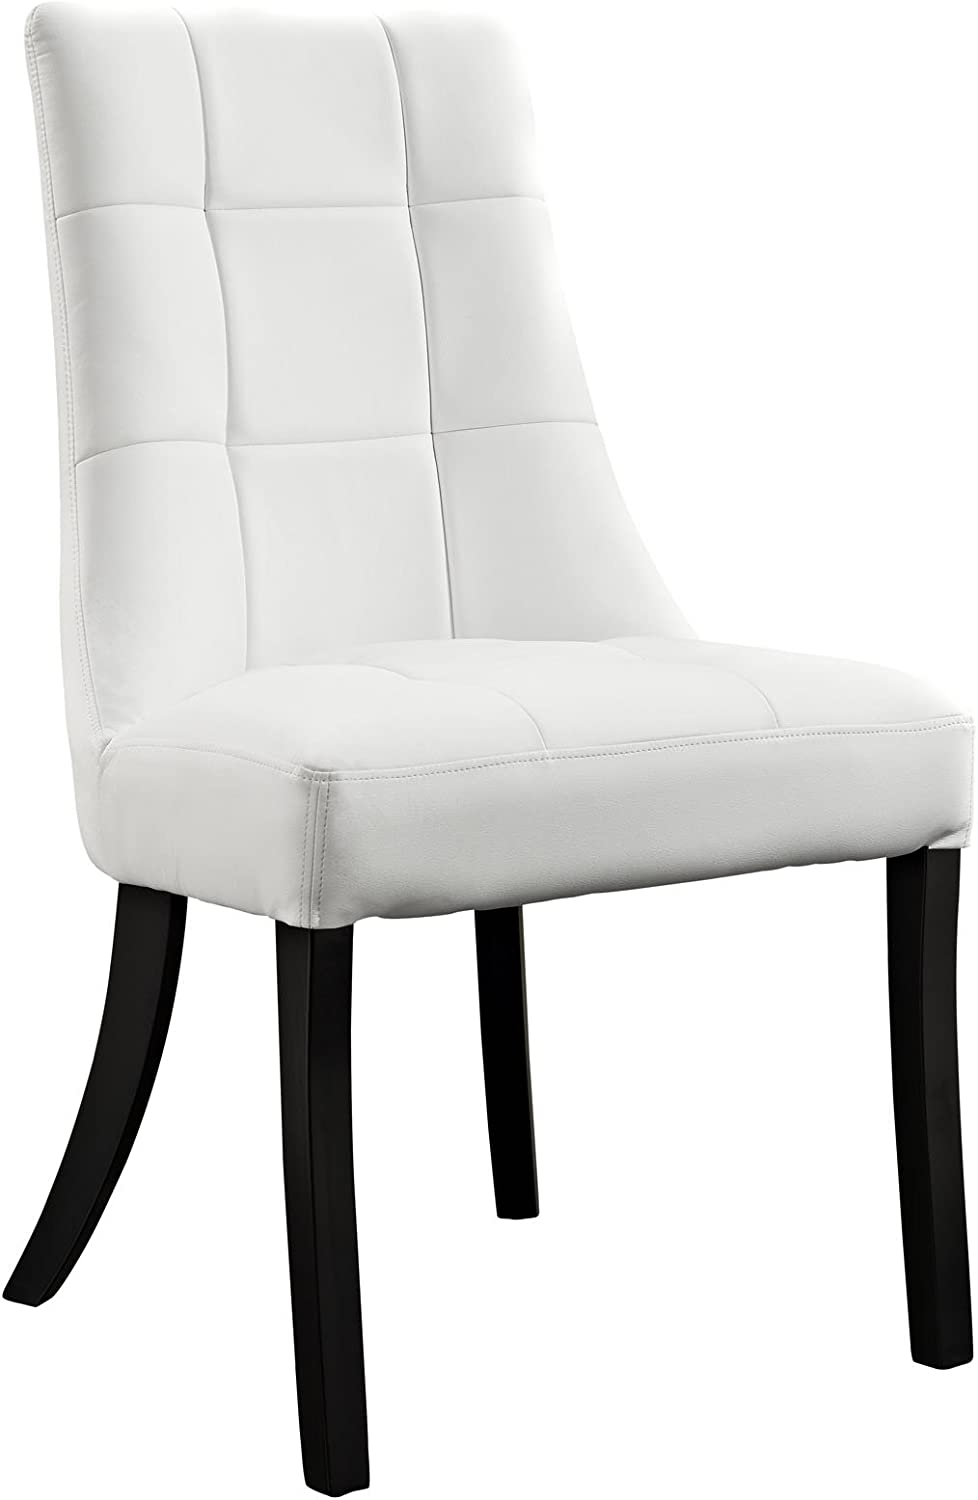 Modway Noblesse Vinyl Dining Chair, White